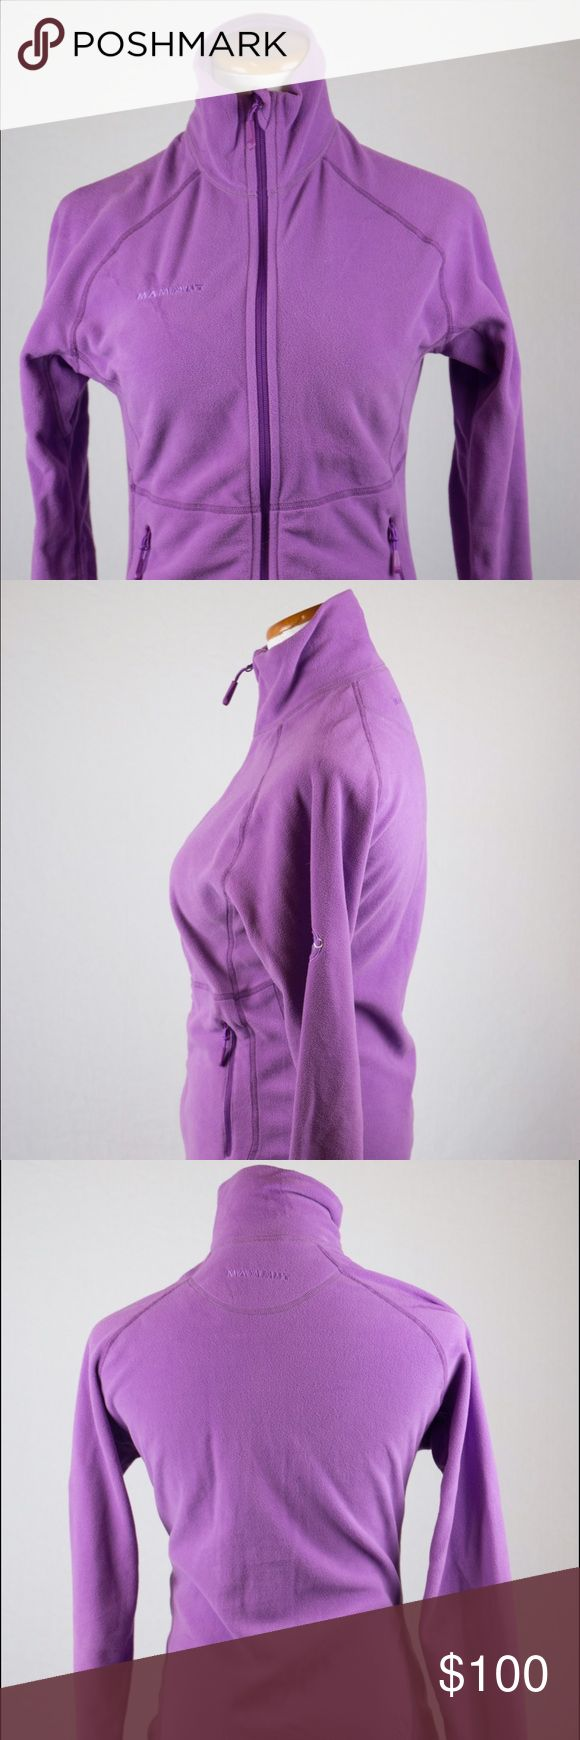 Mammut Women's Zip Up Jacket This light Mammut fleece jacket is a small purple zip up. It is perfect for Fall's crisp weather and will keep you warm as a layer during Winter as well. SKU in warehouse is #823. Mammut Jackets & Coats